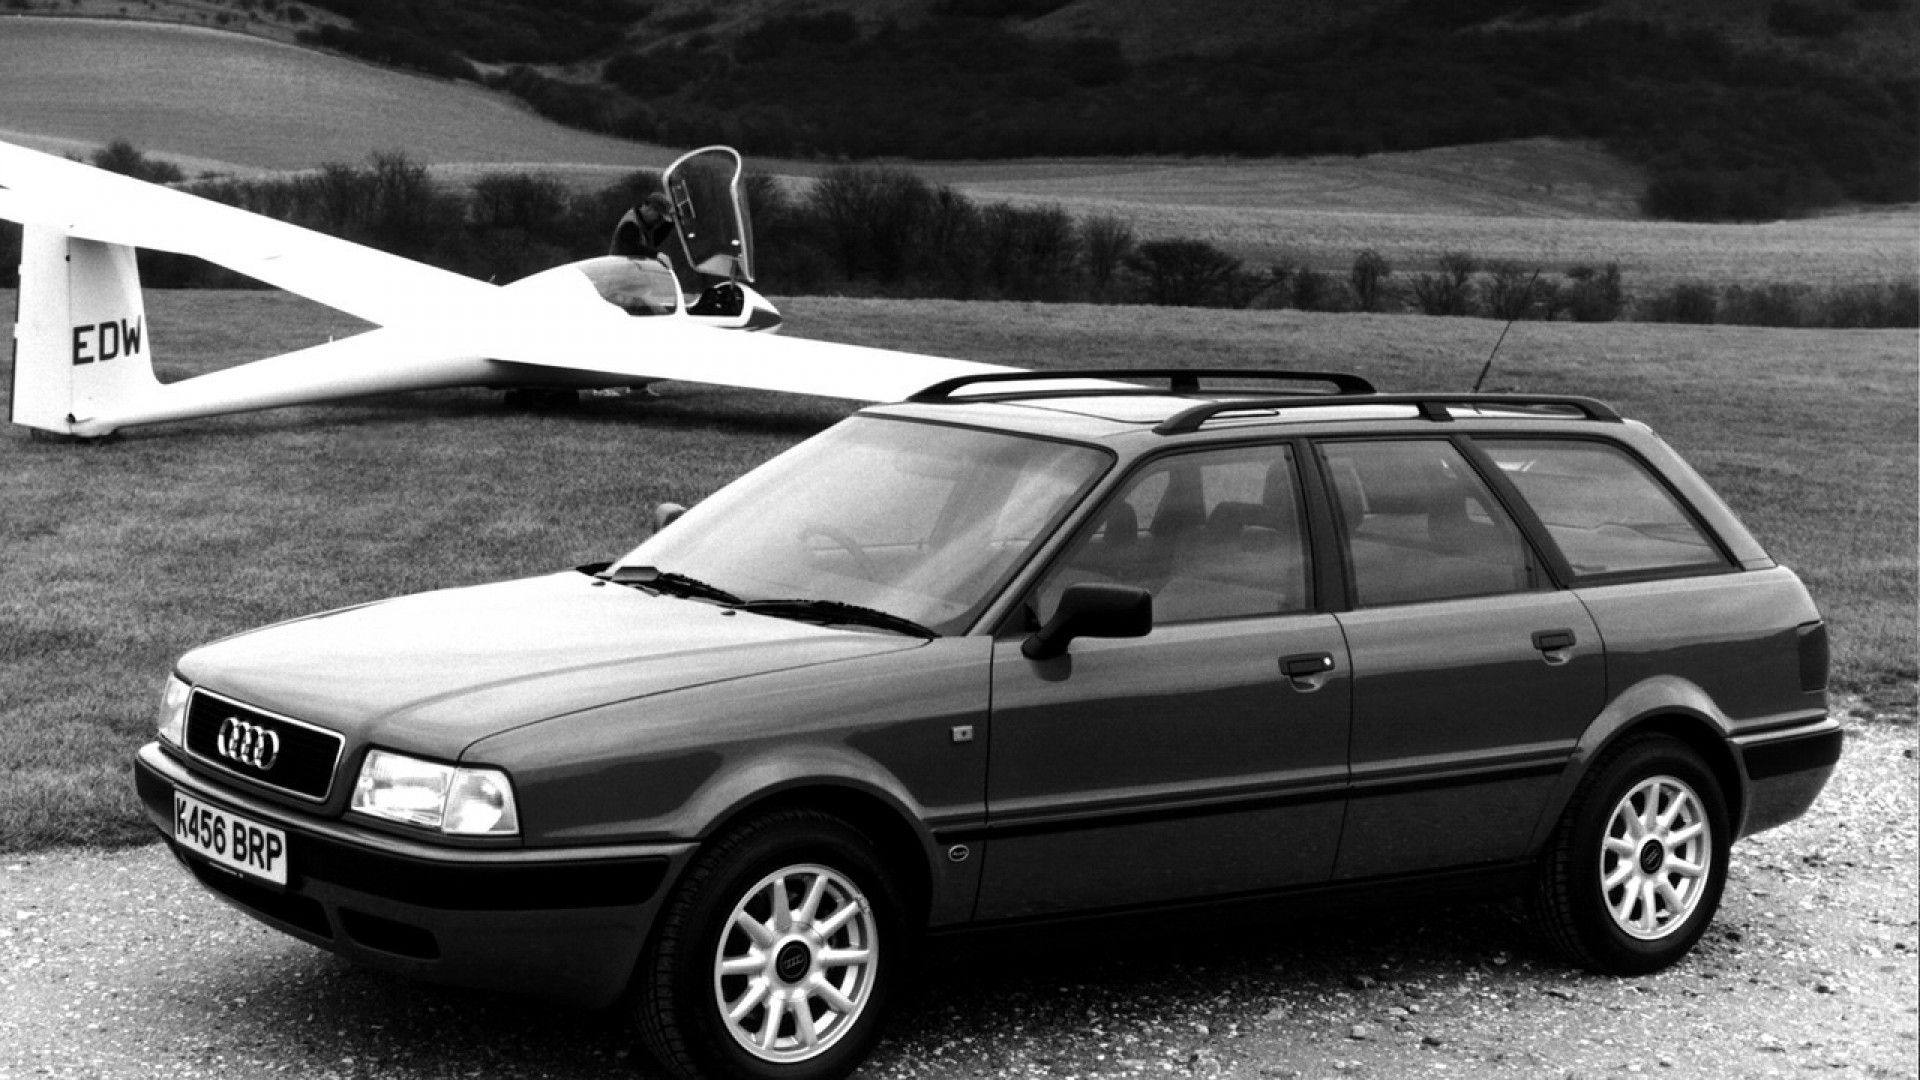 Audi 80 (1991 to 1996) » Definitive List - Cars